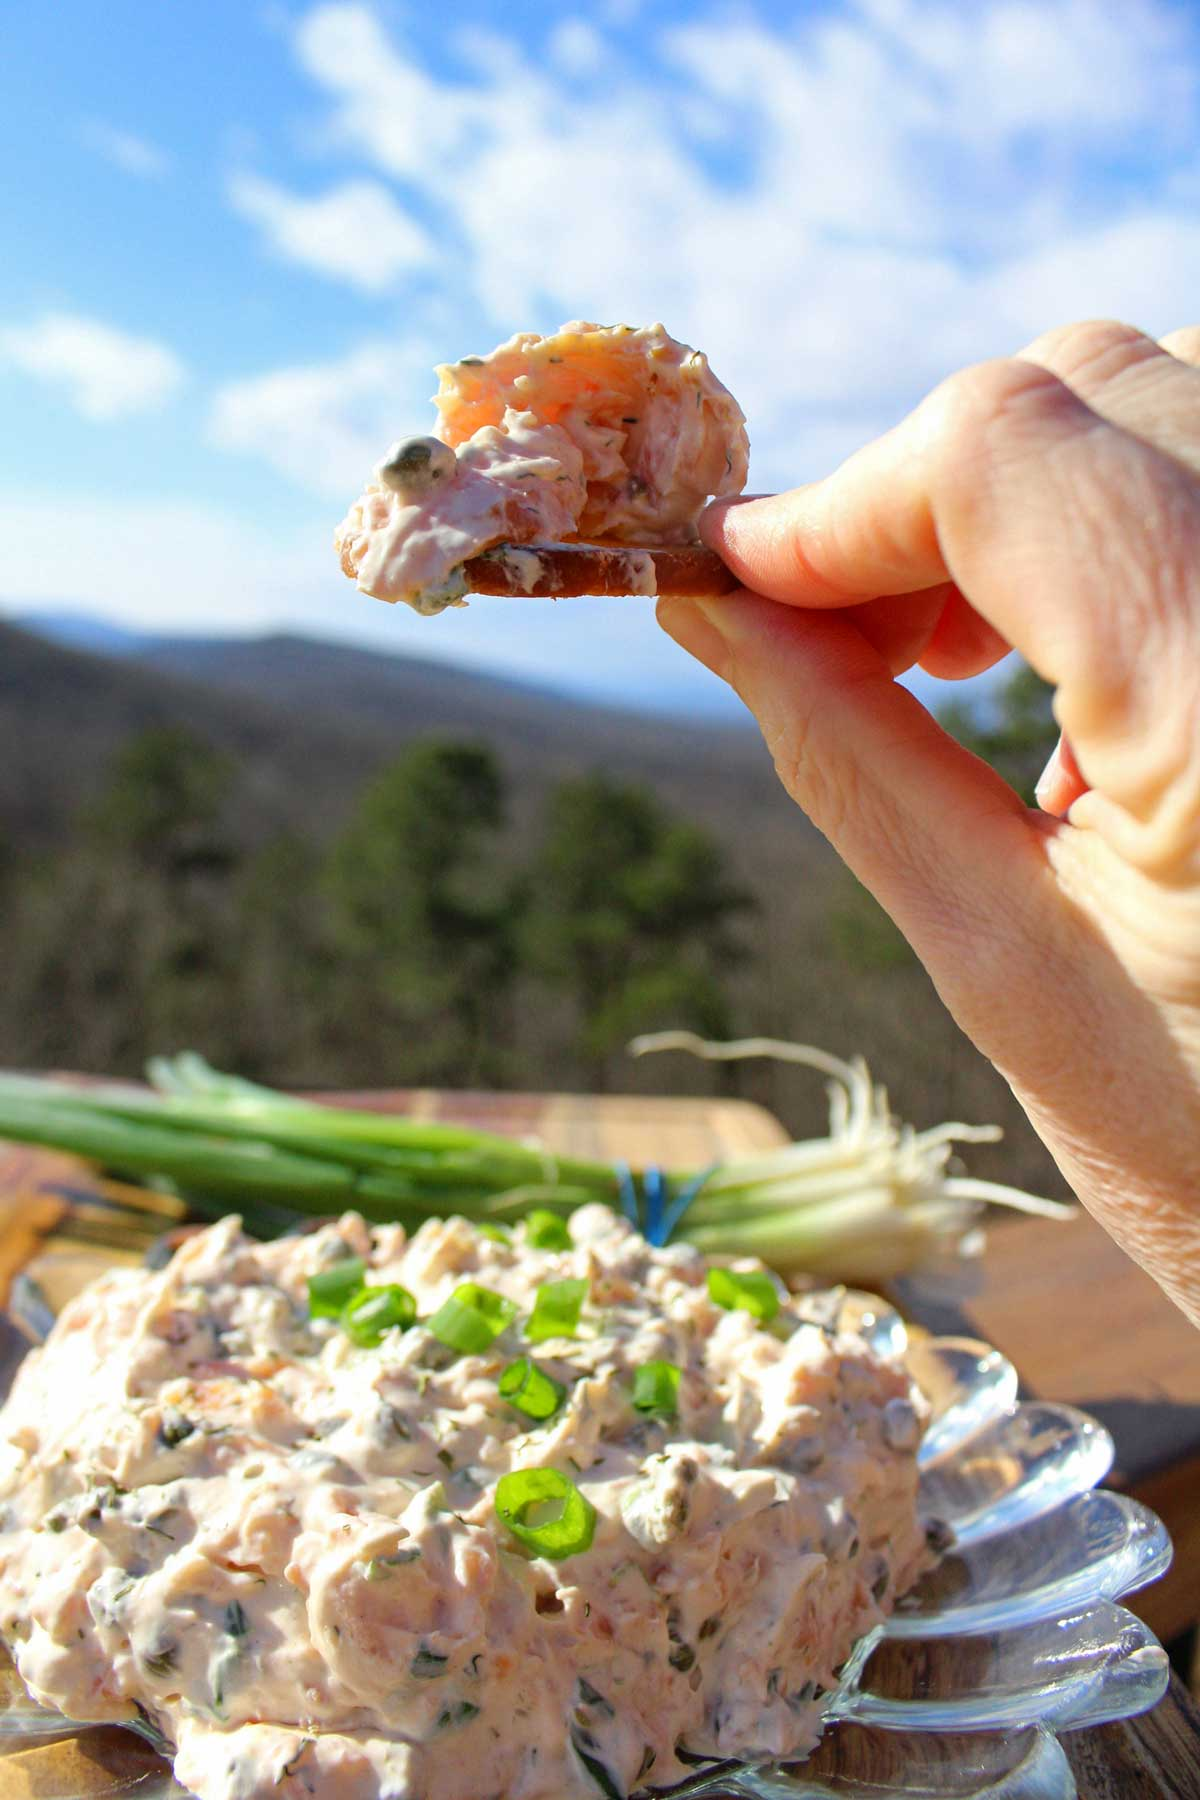 This salmon spread is a quick and easy appetizer made with cream cheese and smoked salmon fresh herbs, lemon juice, Worcestershire, and hot sauce. Delicious!